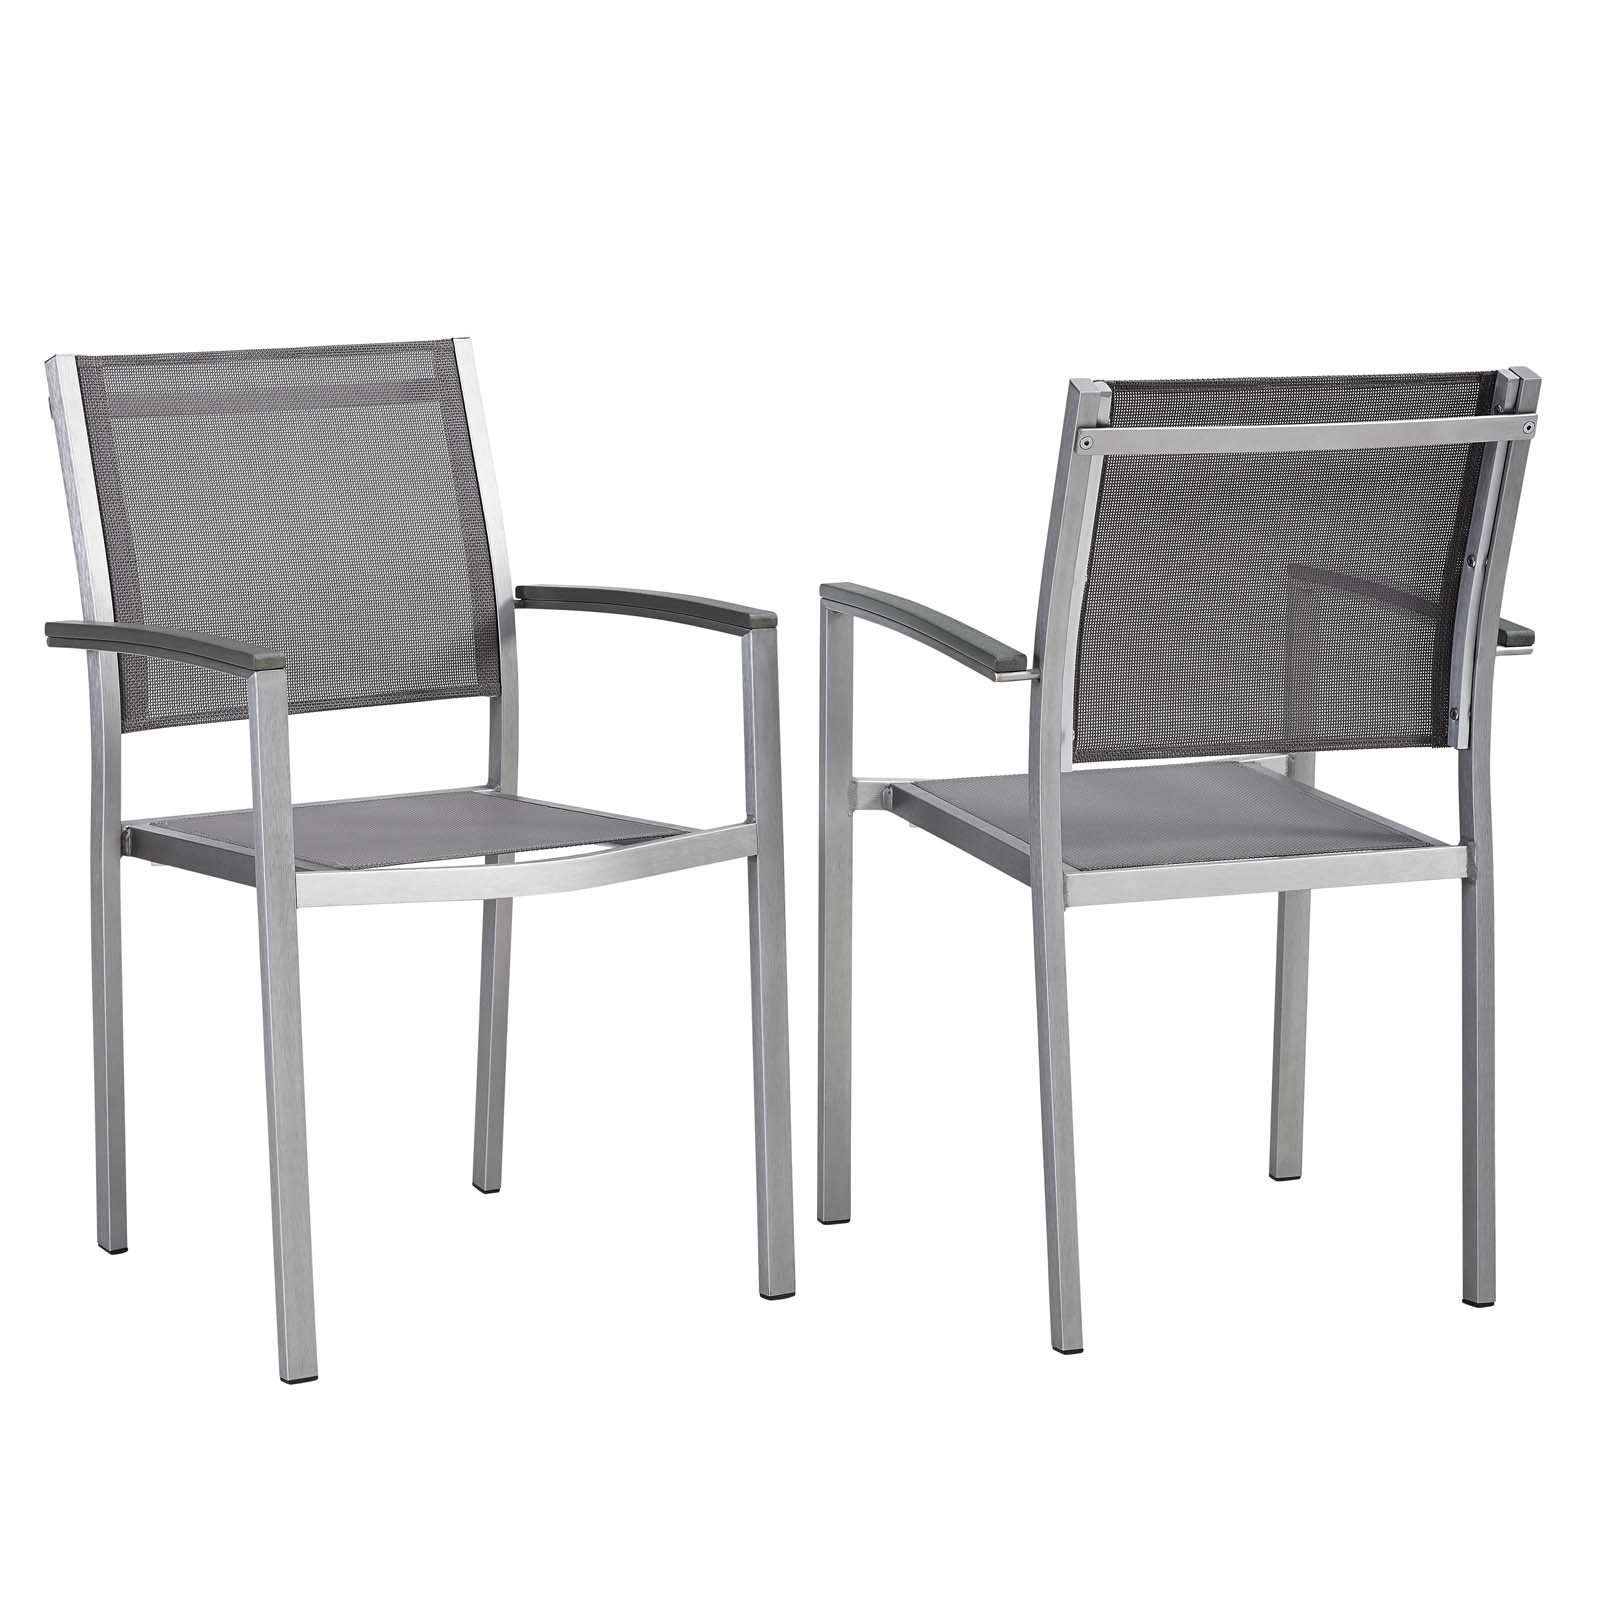 Shop shore aluminum outdoor dining chair set of 2 on sale free shipping today overstock 13476786